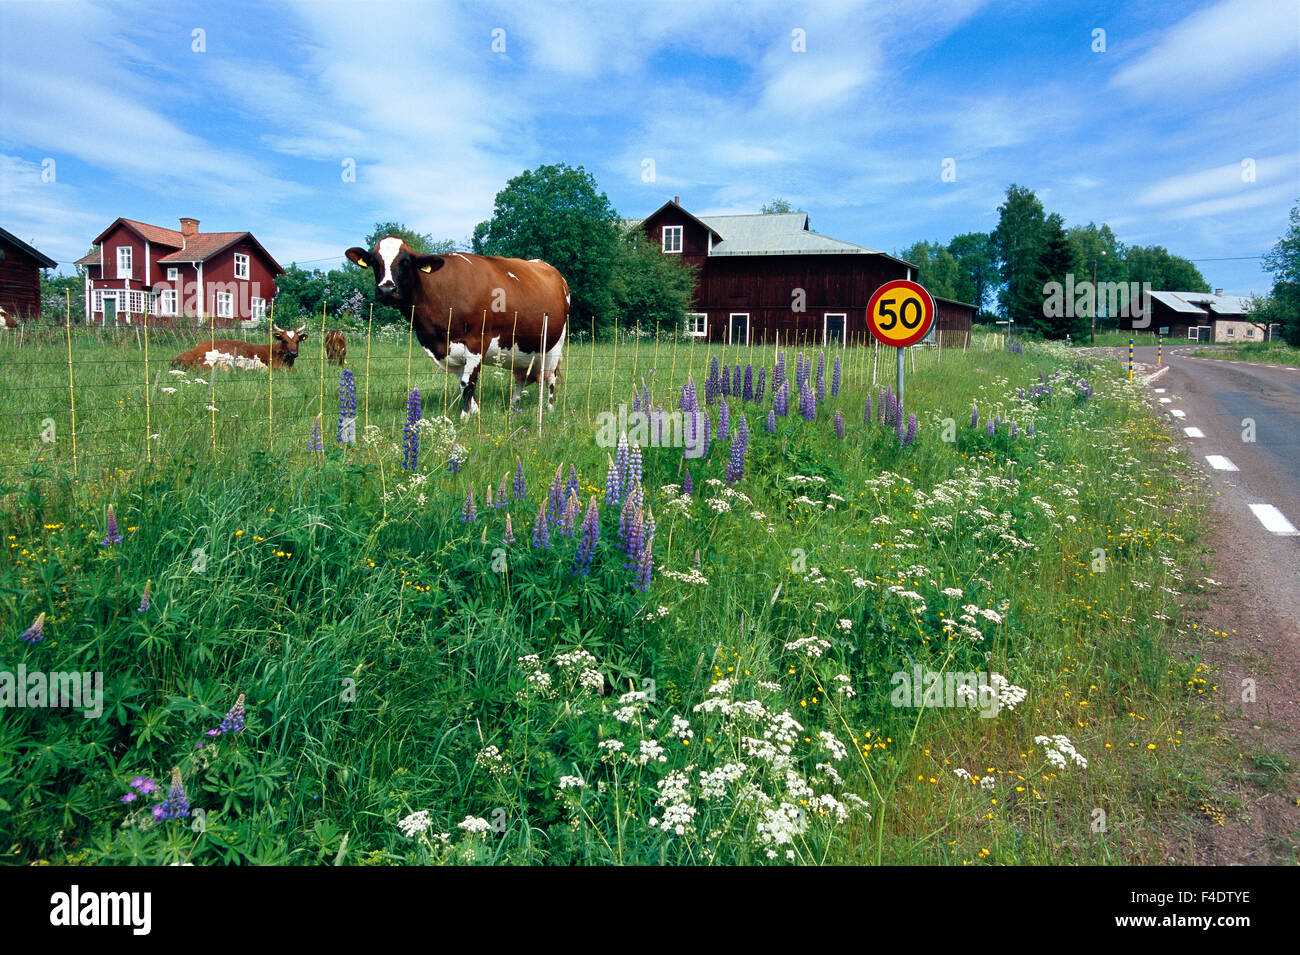 Cows in a enclosed pasture. - Stock Image